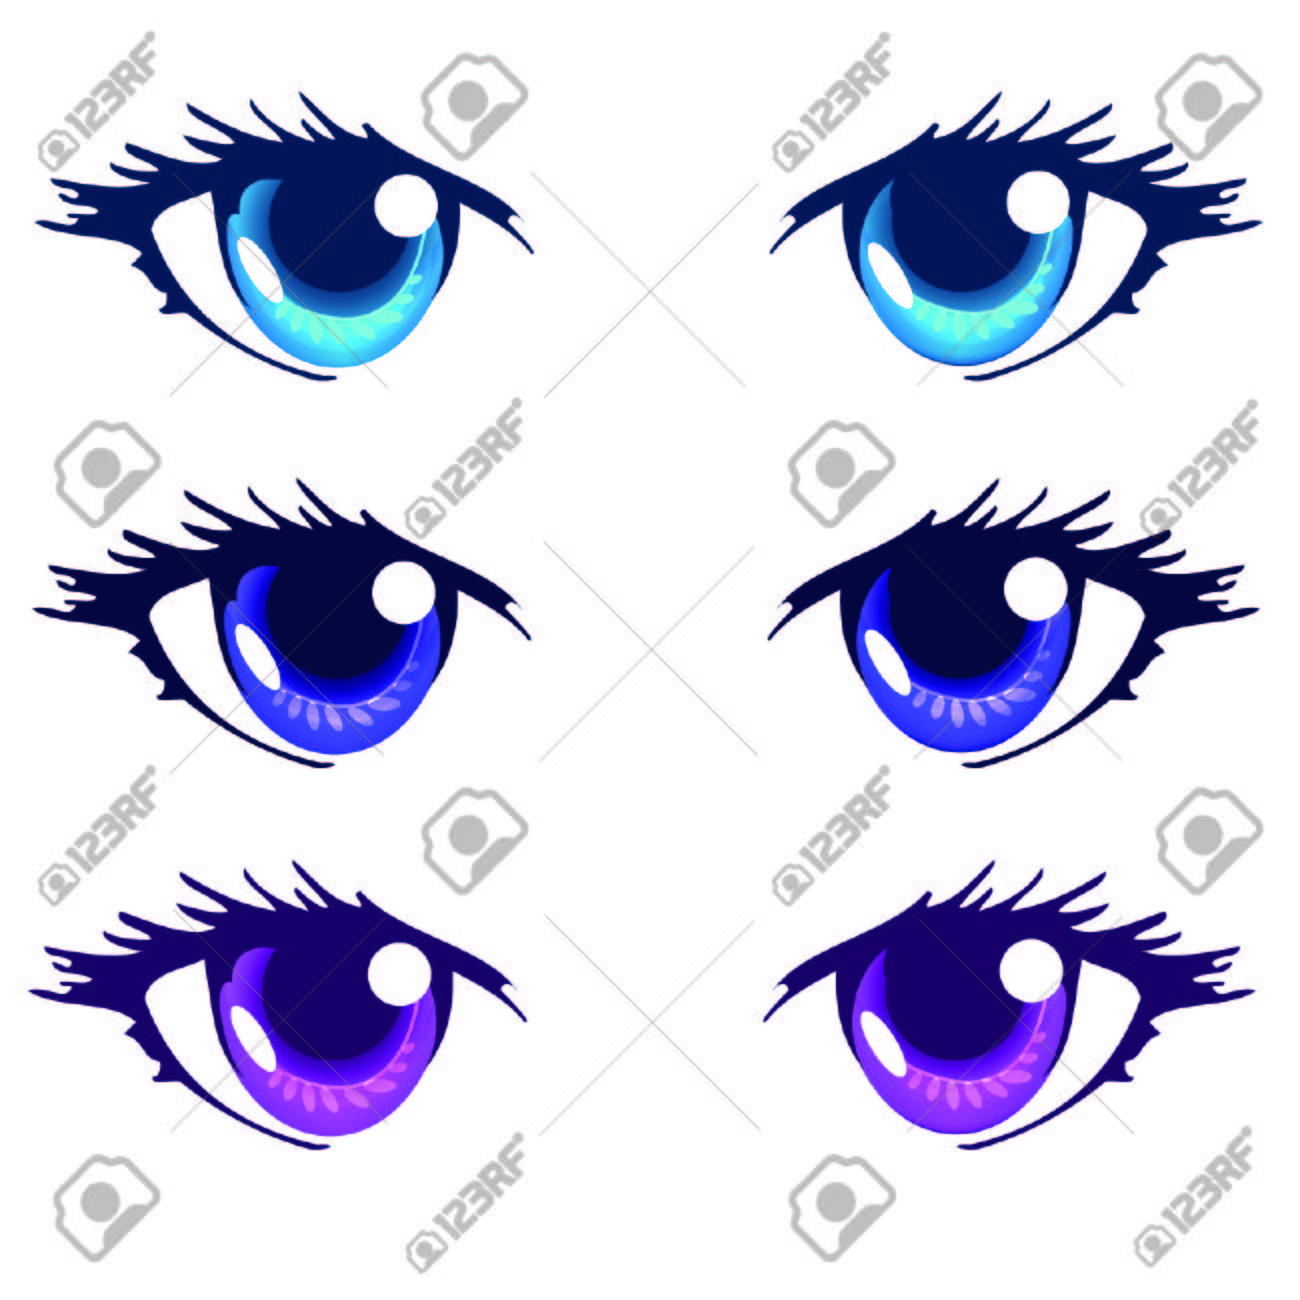 Light Blue Royal Blue And Purple Color Anime Eyes Royalty Free ...